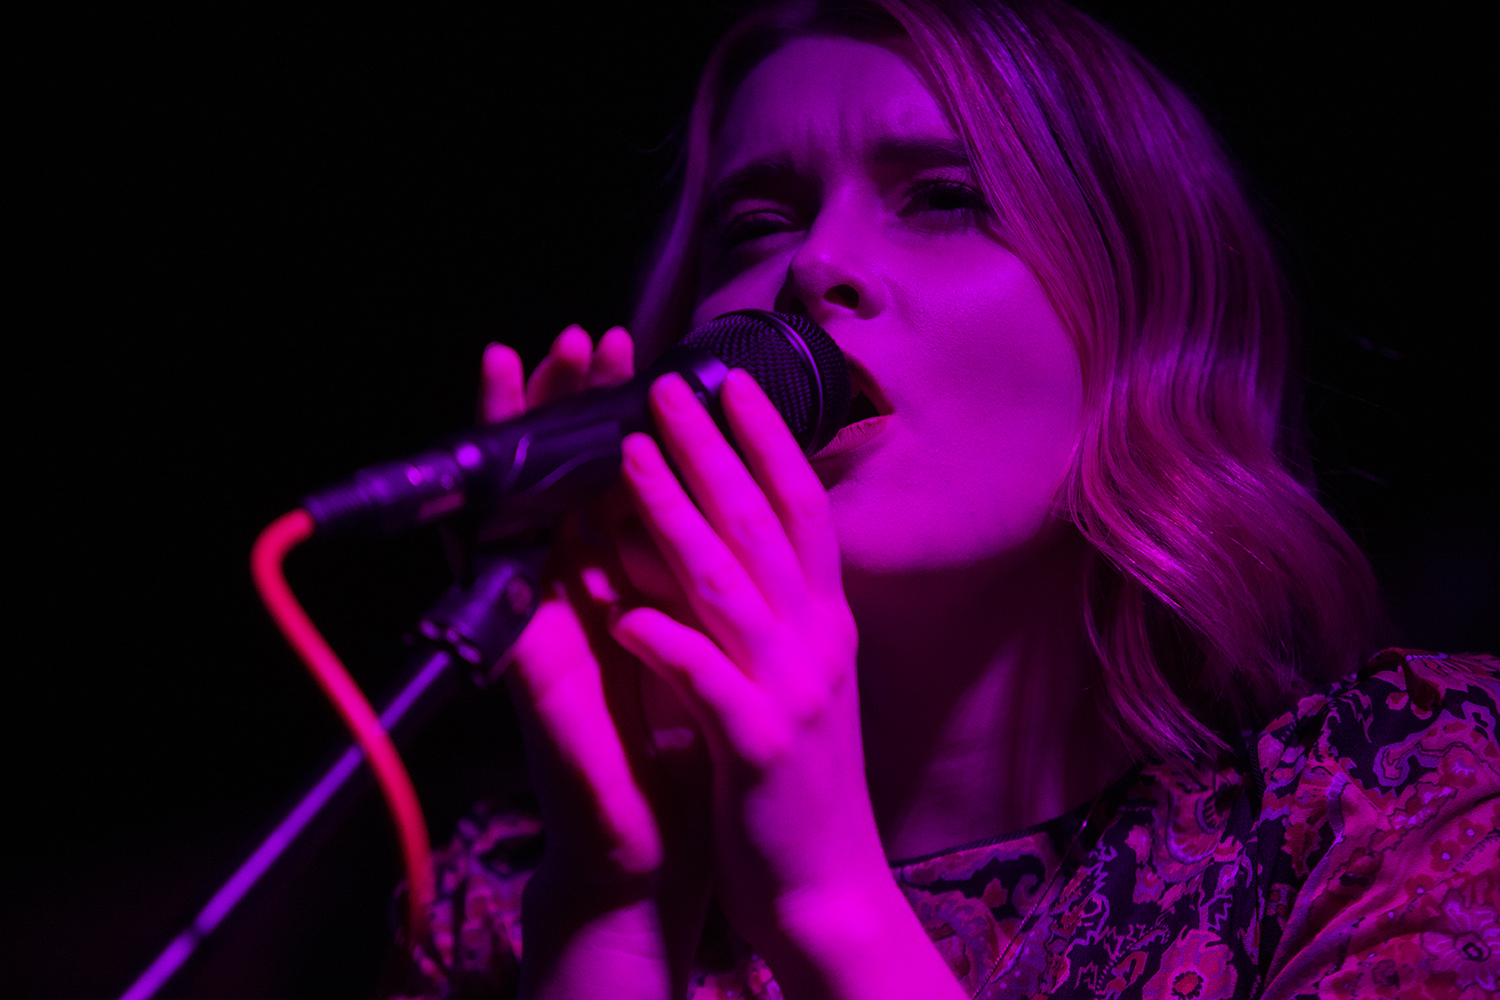 Iowa City singer/songwriter Hannah Frey performs at her album release party with Young Charles and Ivory James at Trumpet Blossom on Thursday, Dec. 12, 2019.